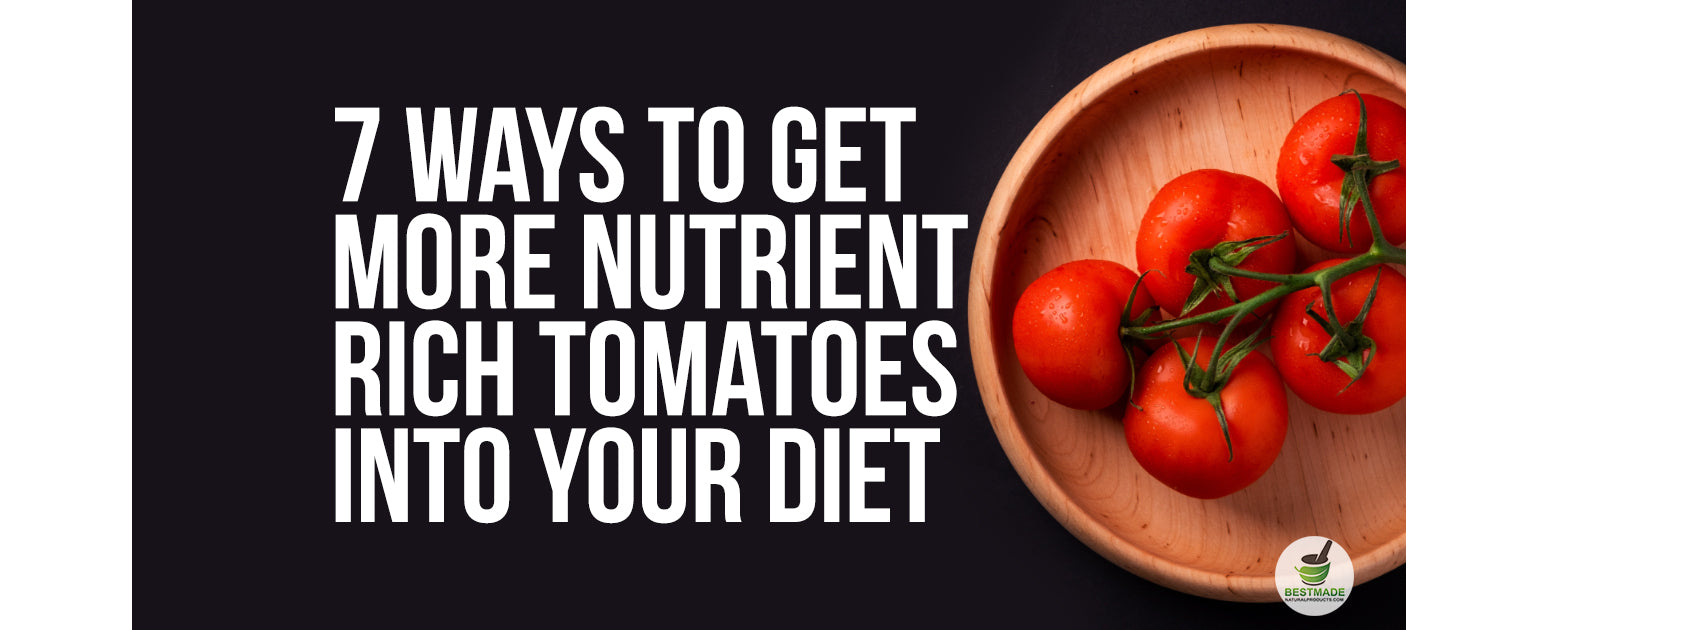 7 Ways To Get More Nutrient Rich Tomatoes Into Your Diet